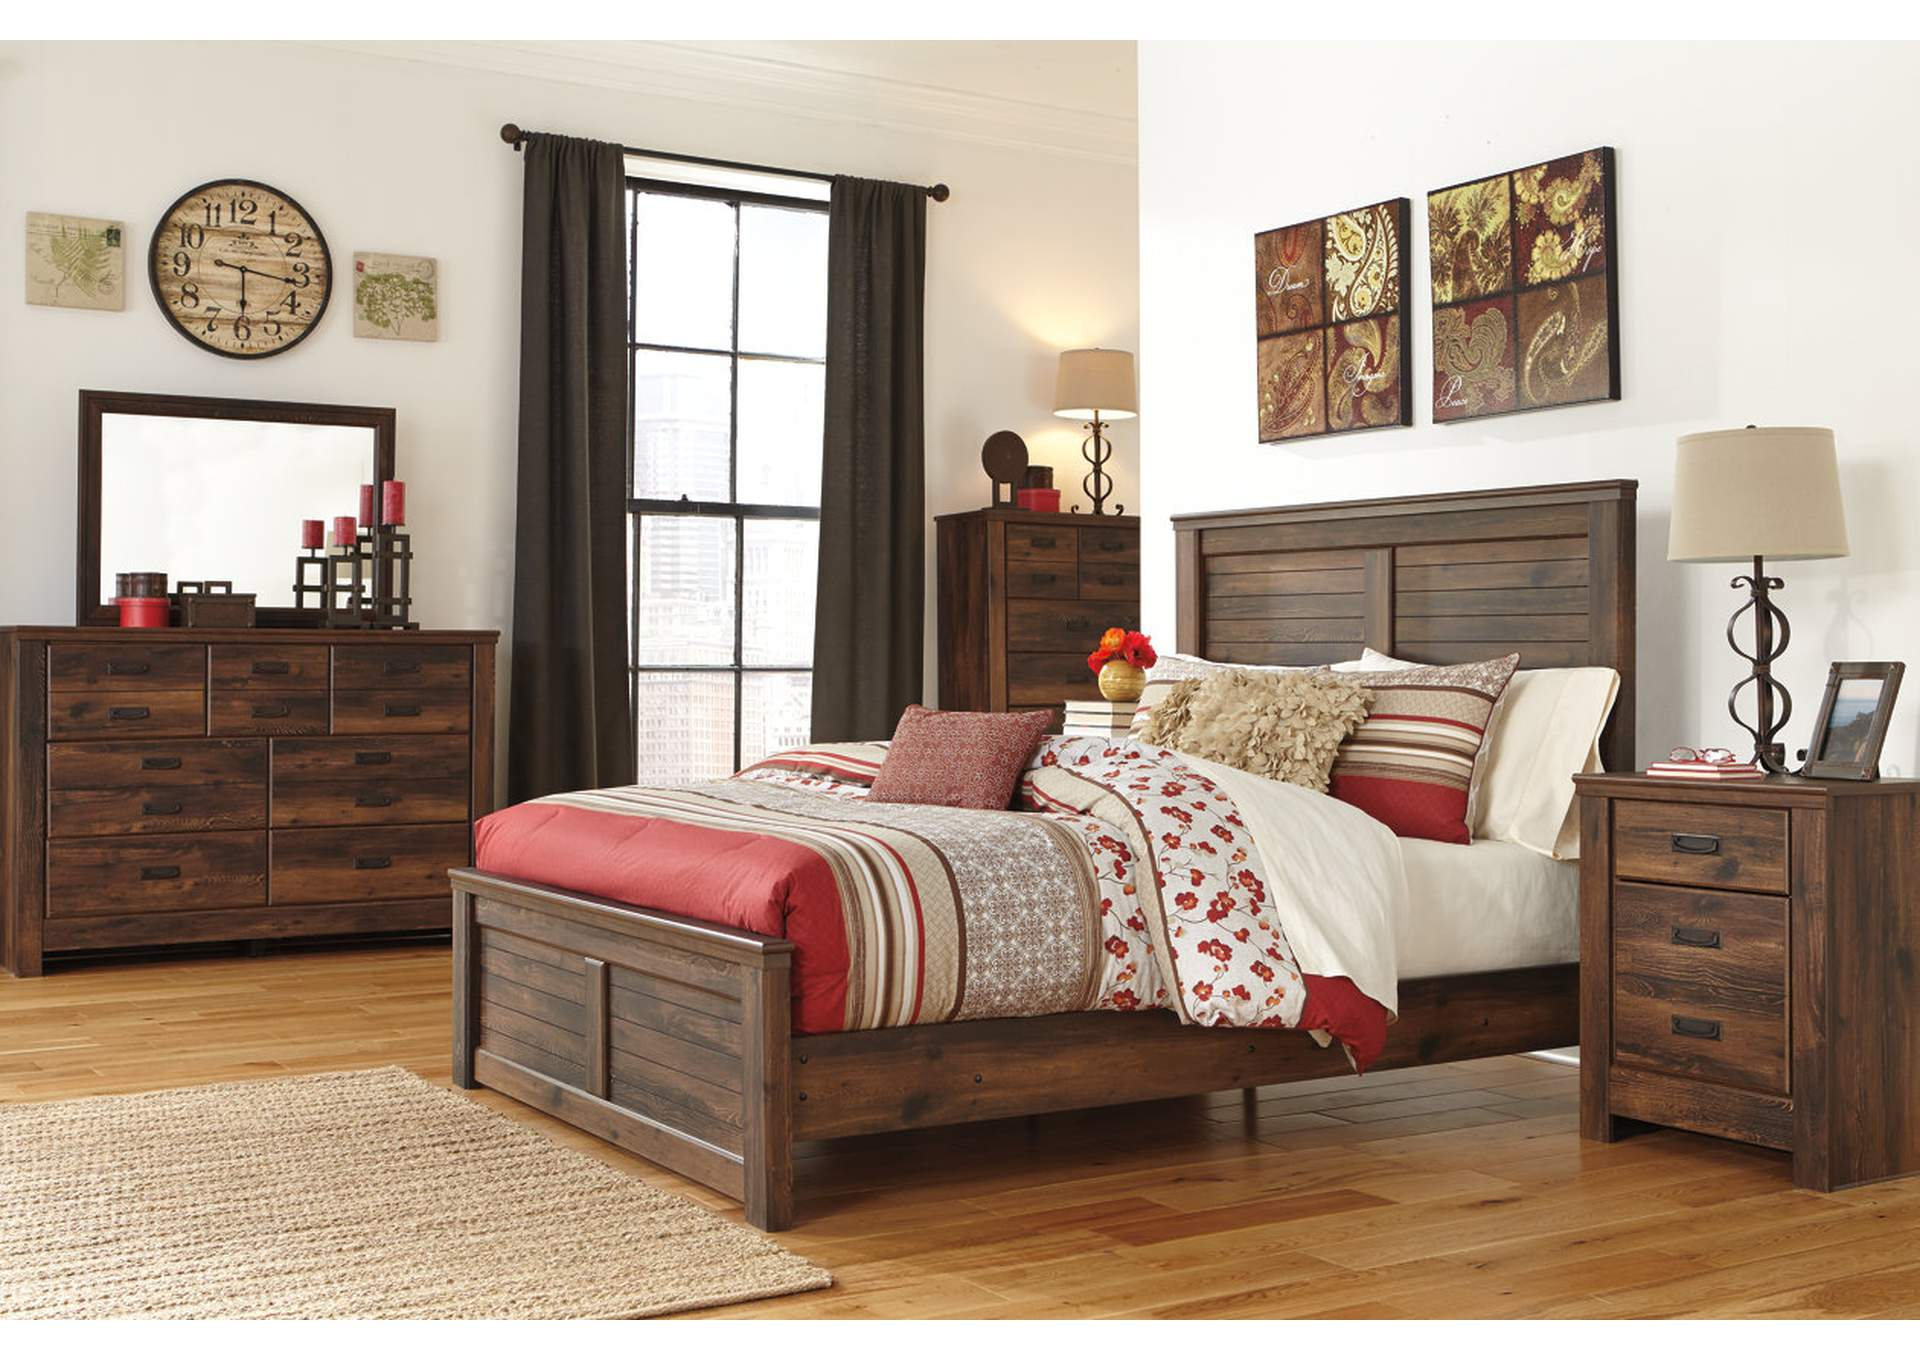 Quinden King Panel Bed w/Dresser & Mirror,Signature Design By Ashley